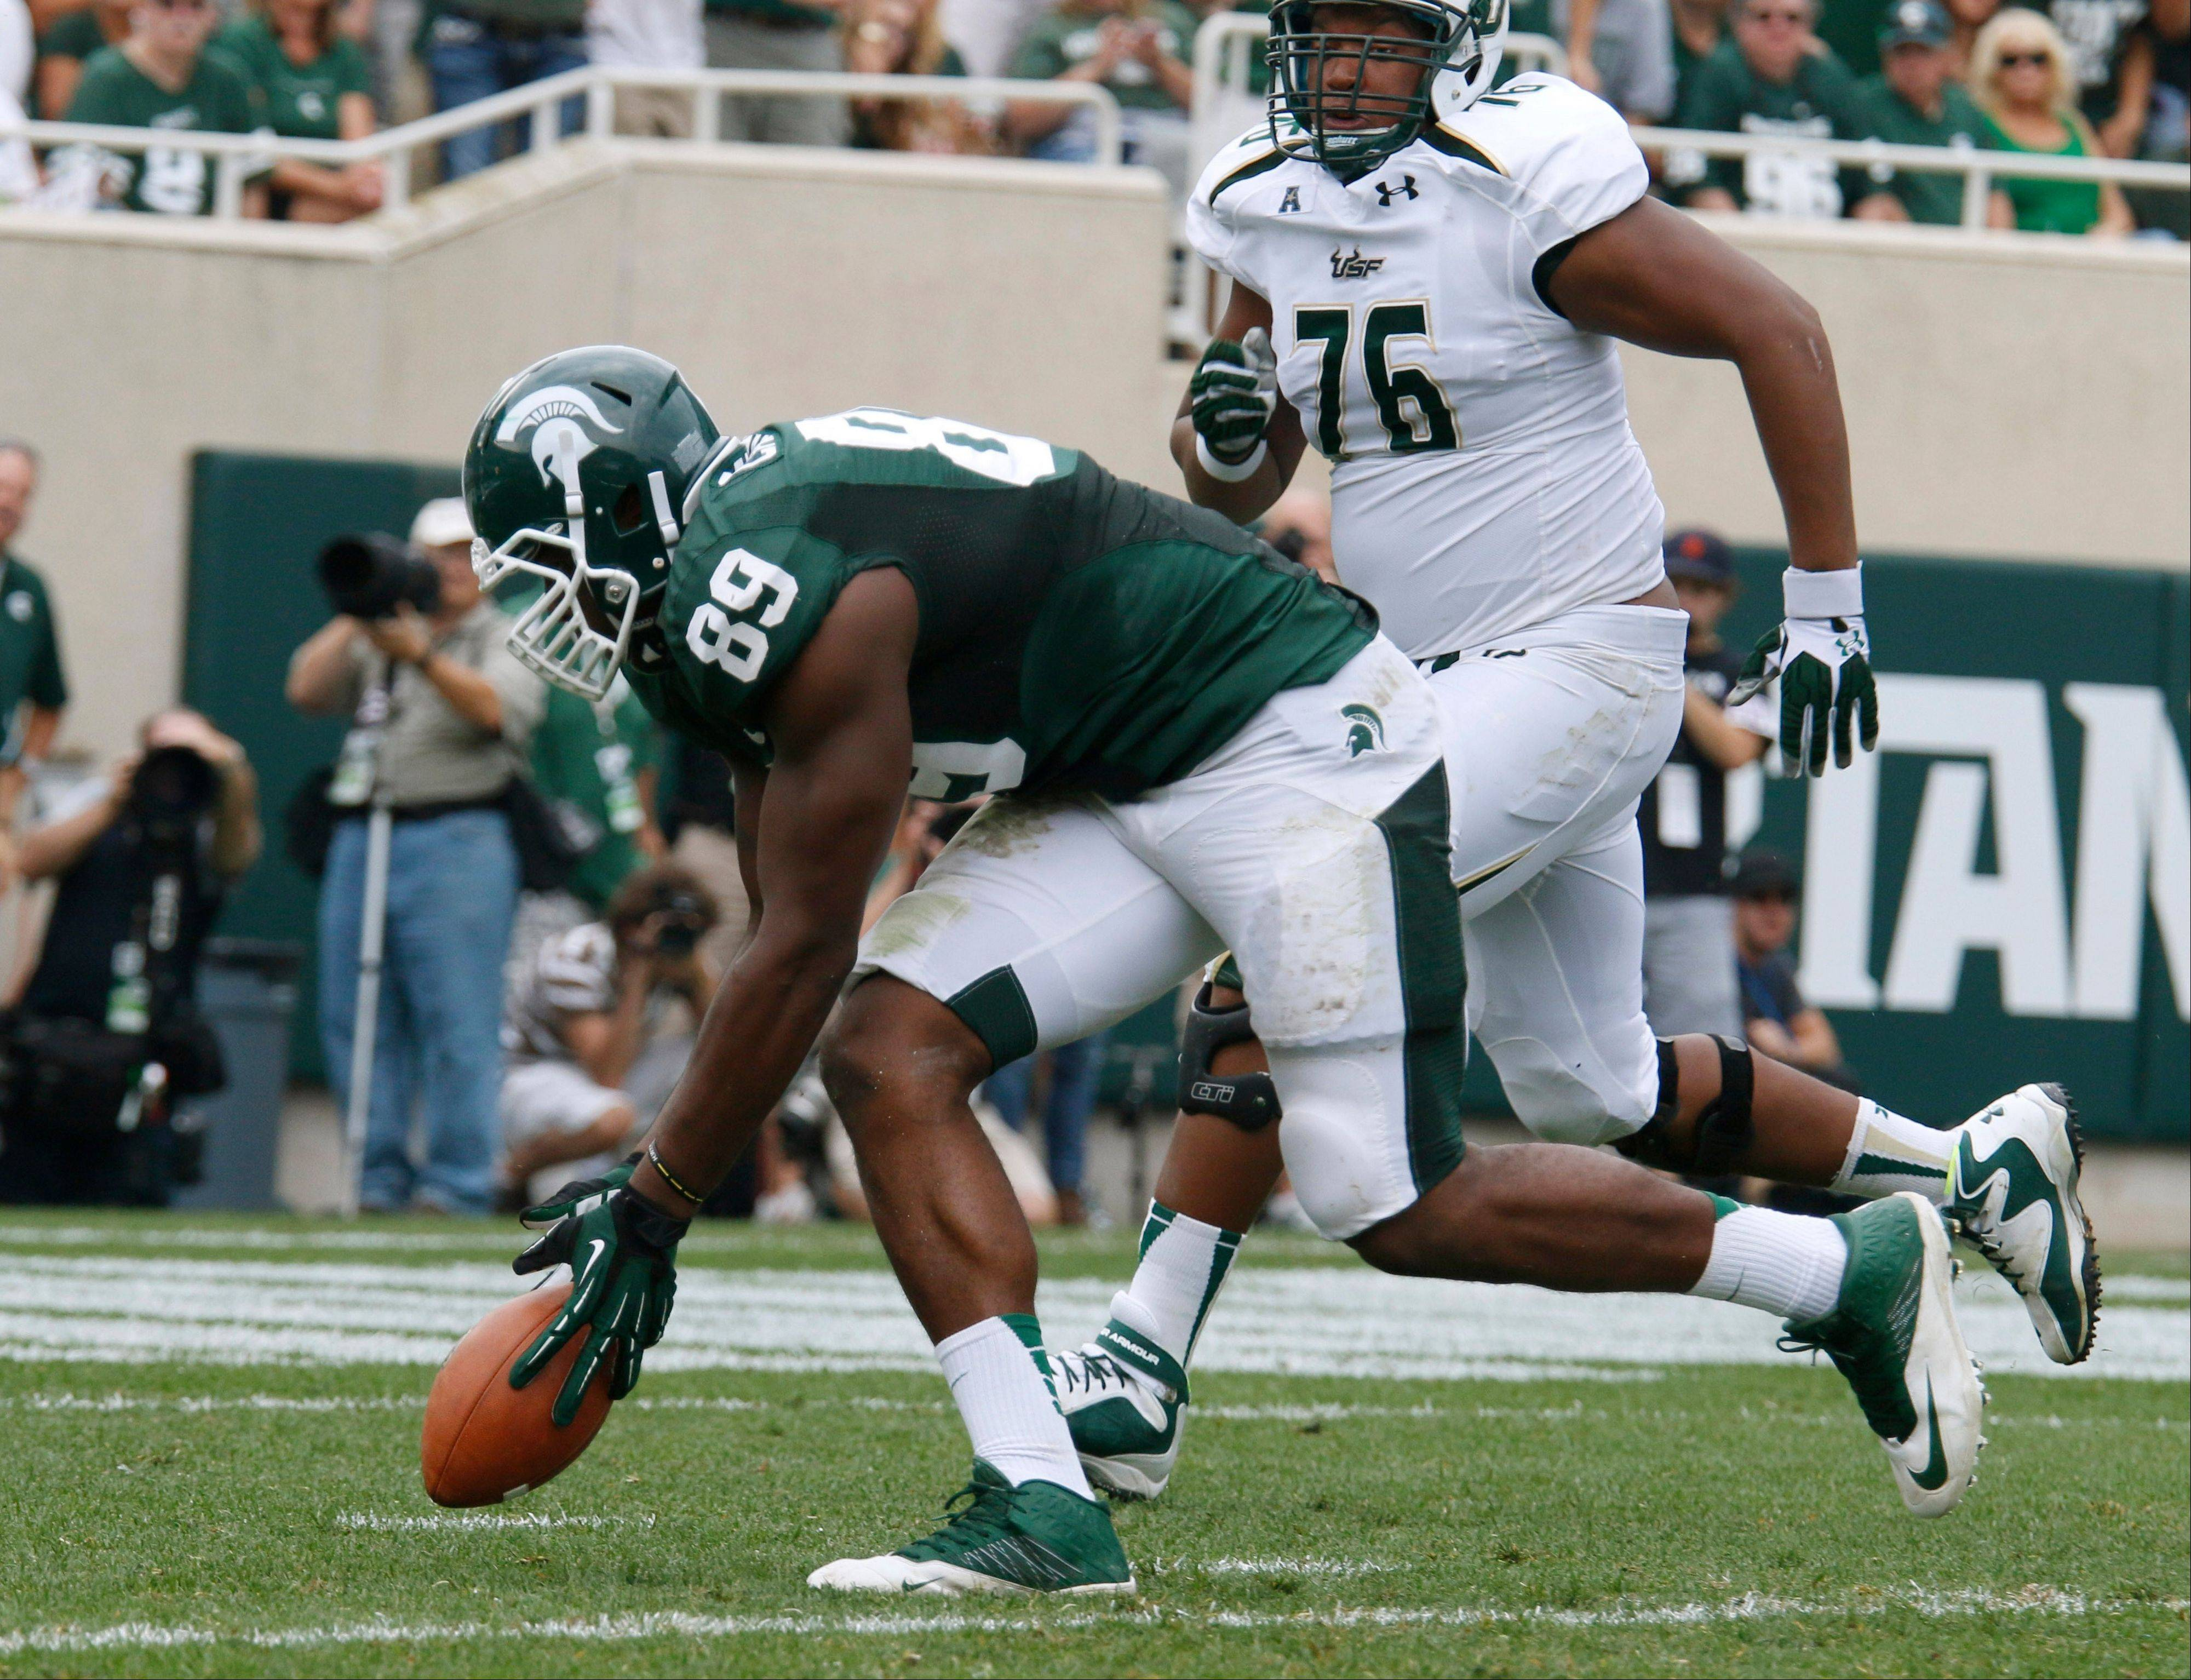 Michigan State�s Shilique Calhoun picks up a fumble and returns it for a touchdown in front of South Florida�s Darrell Williams during the second quarter Saturday in East Lansing, Mich.